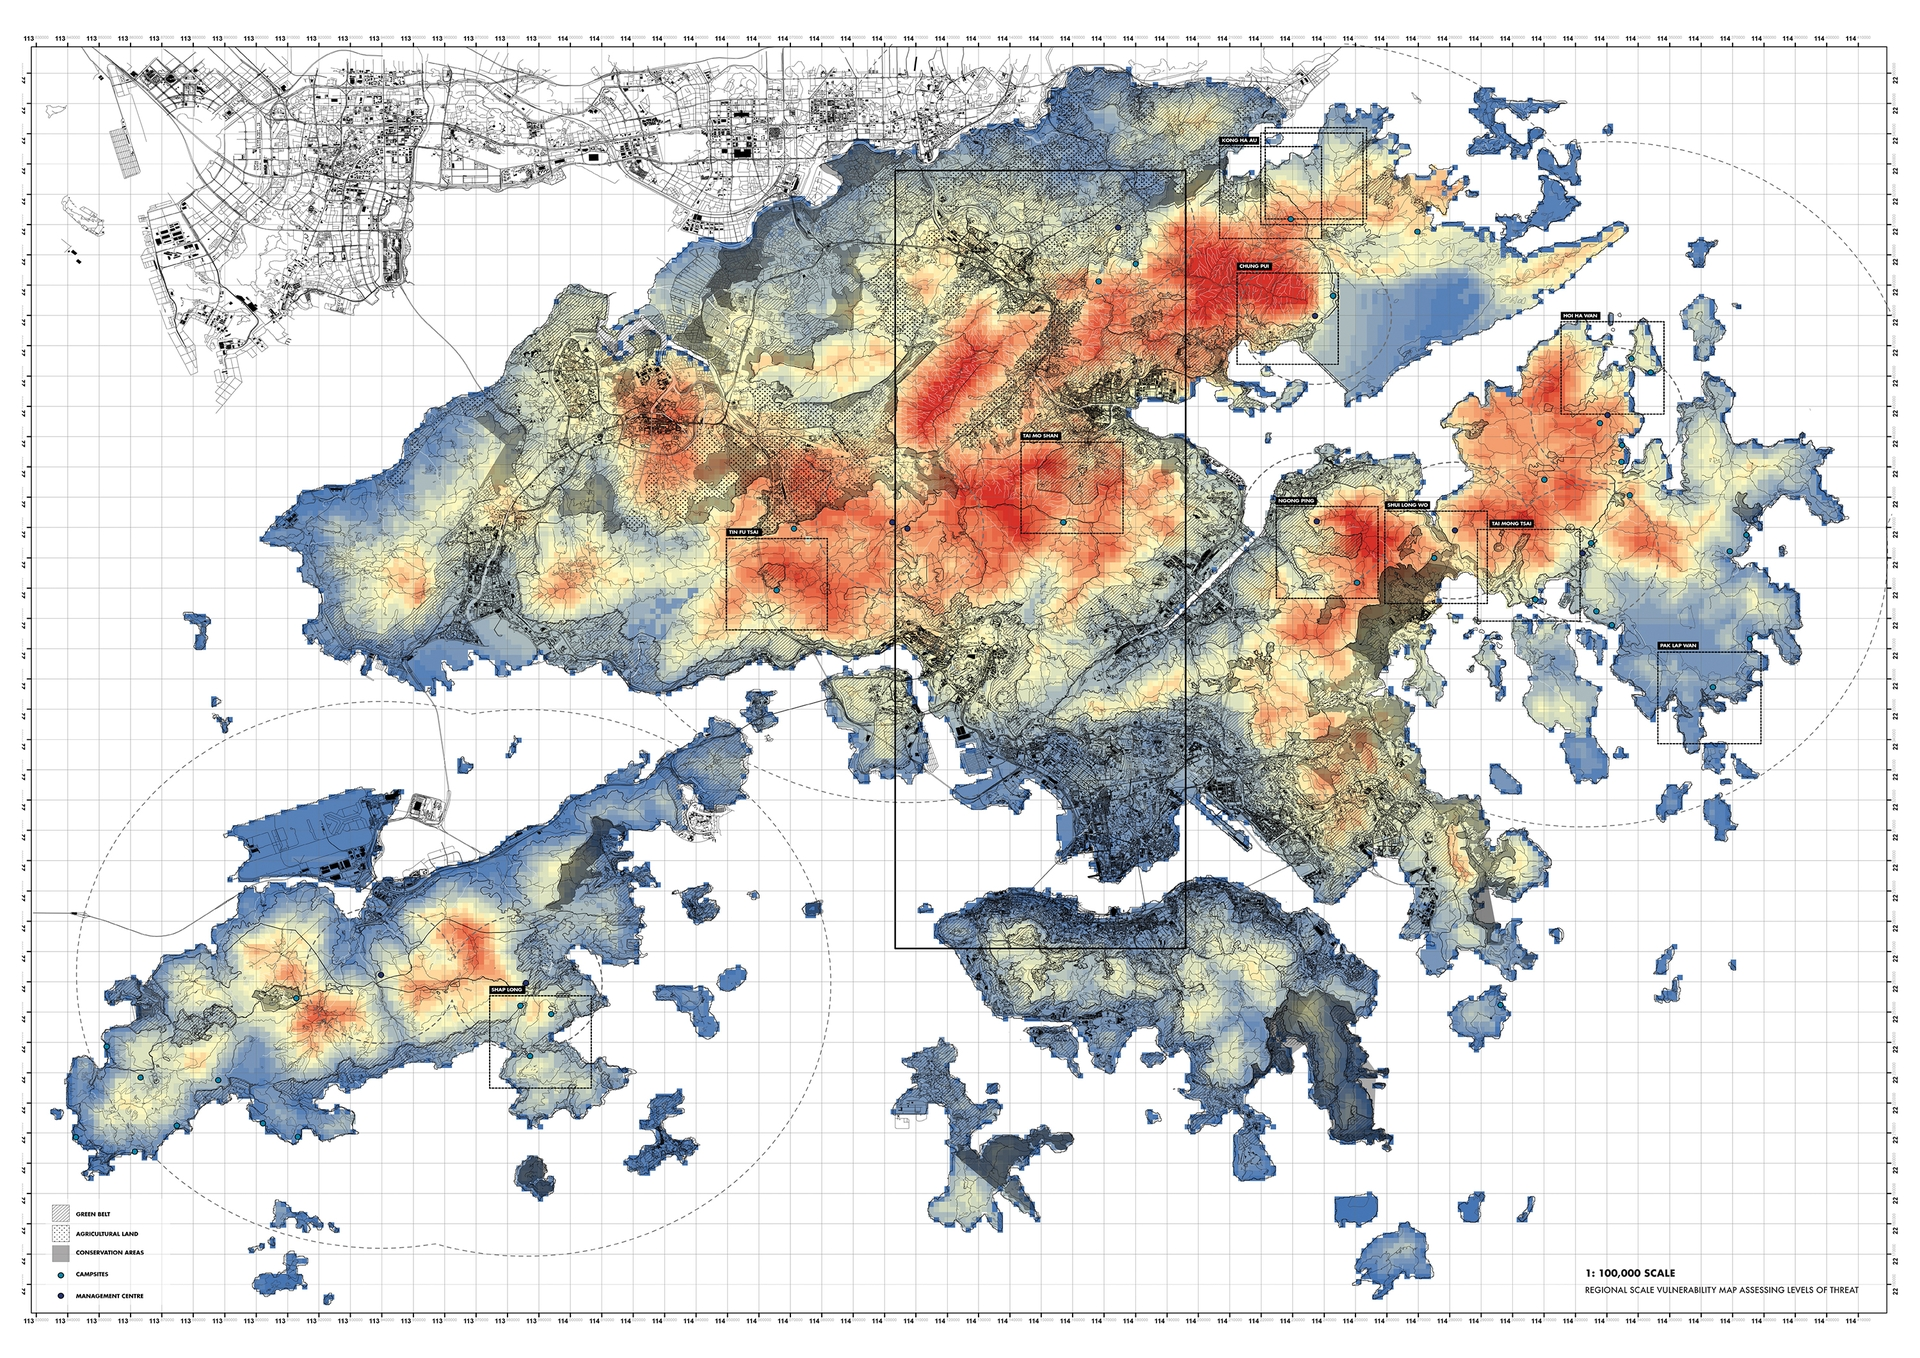 Enlarge Photo: Conservation Watch: Nuanced modelling approaches for adaptive management of Hong Kong's conservation landscapes. By SHUM Siu Kei David.